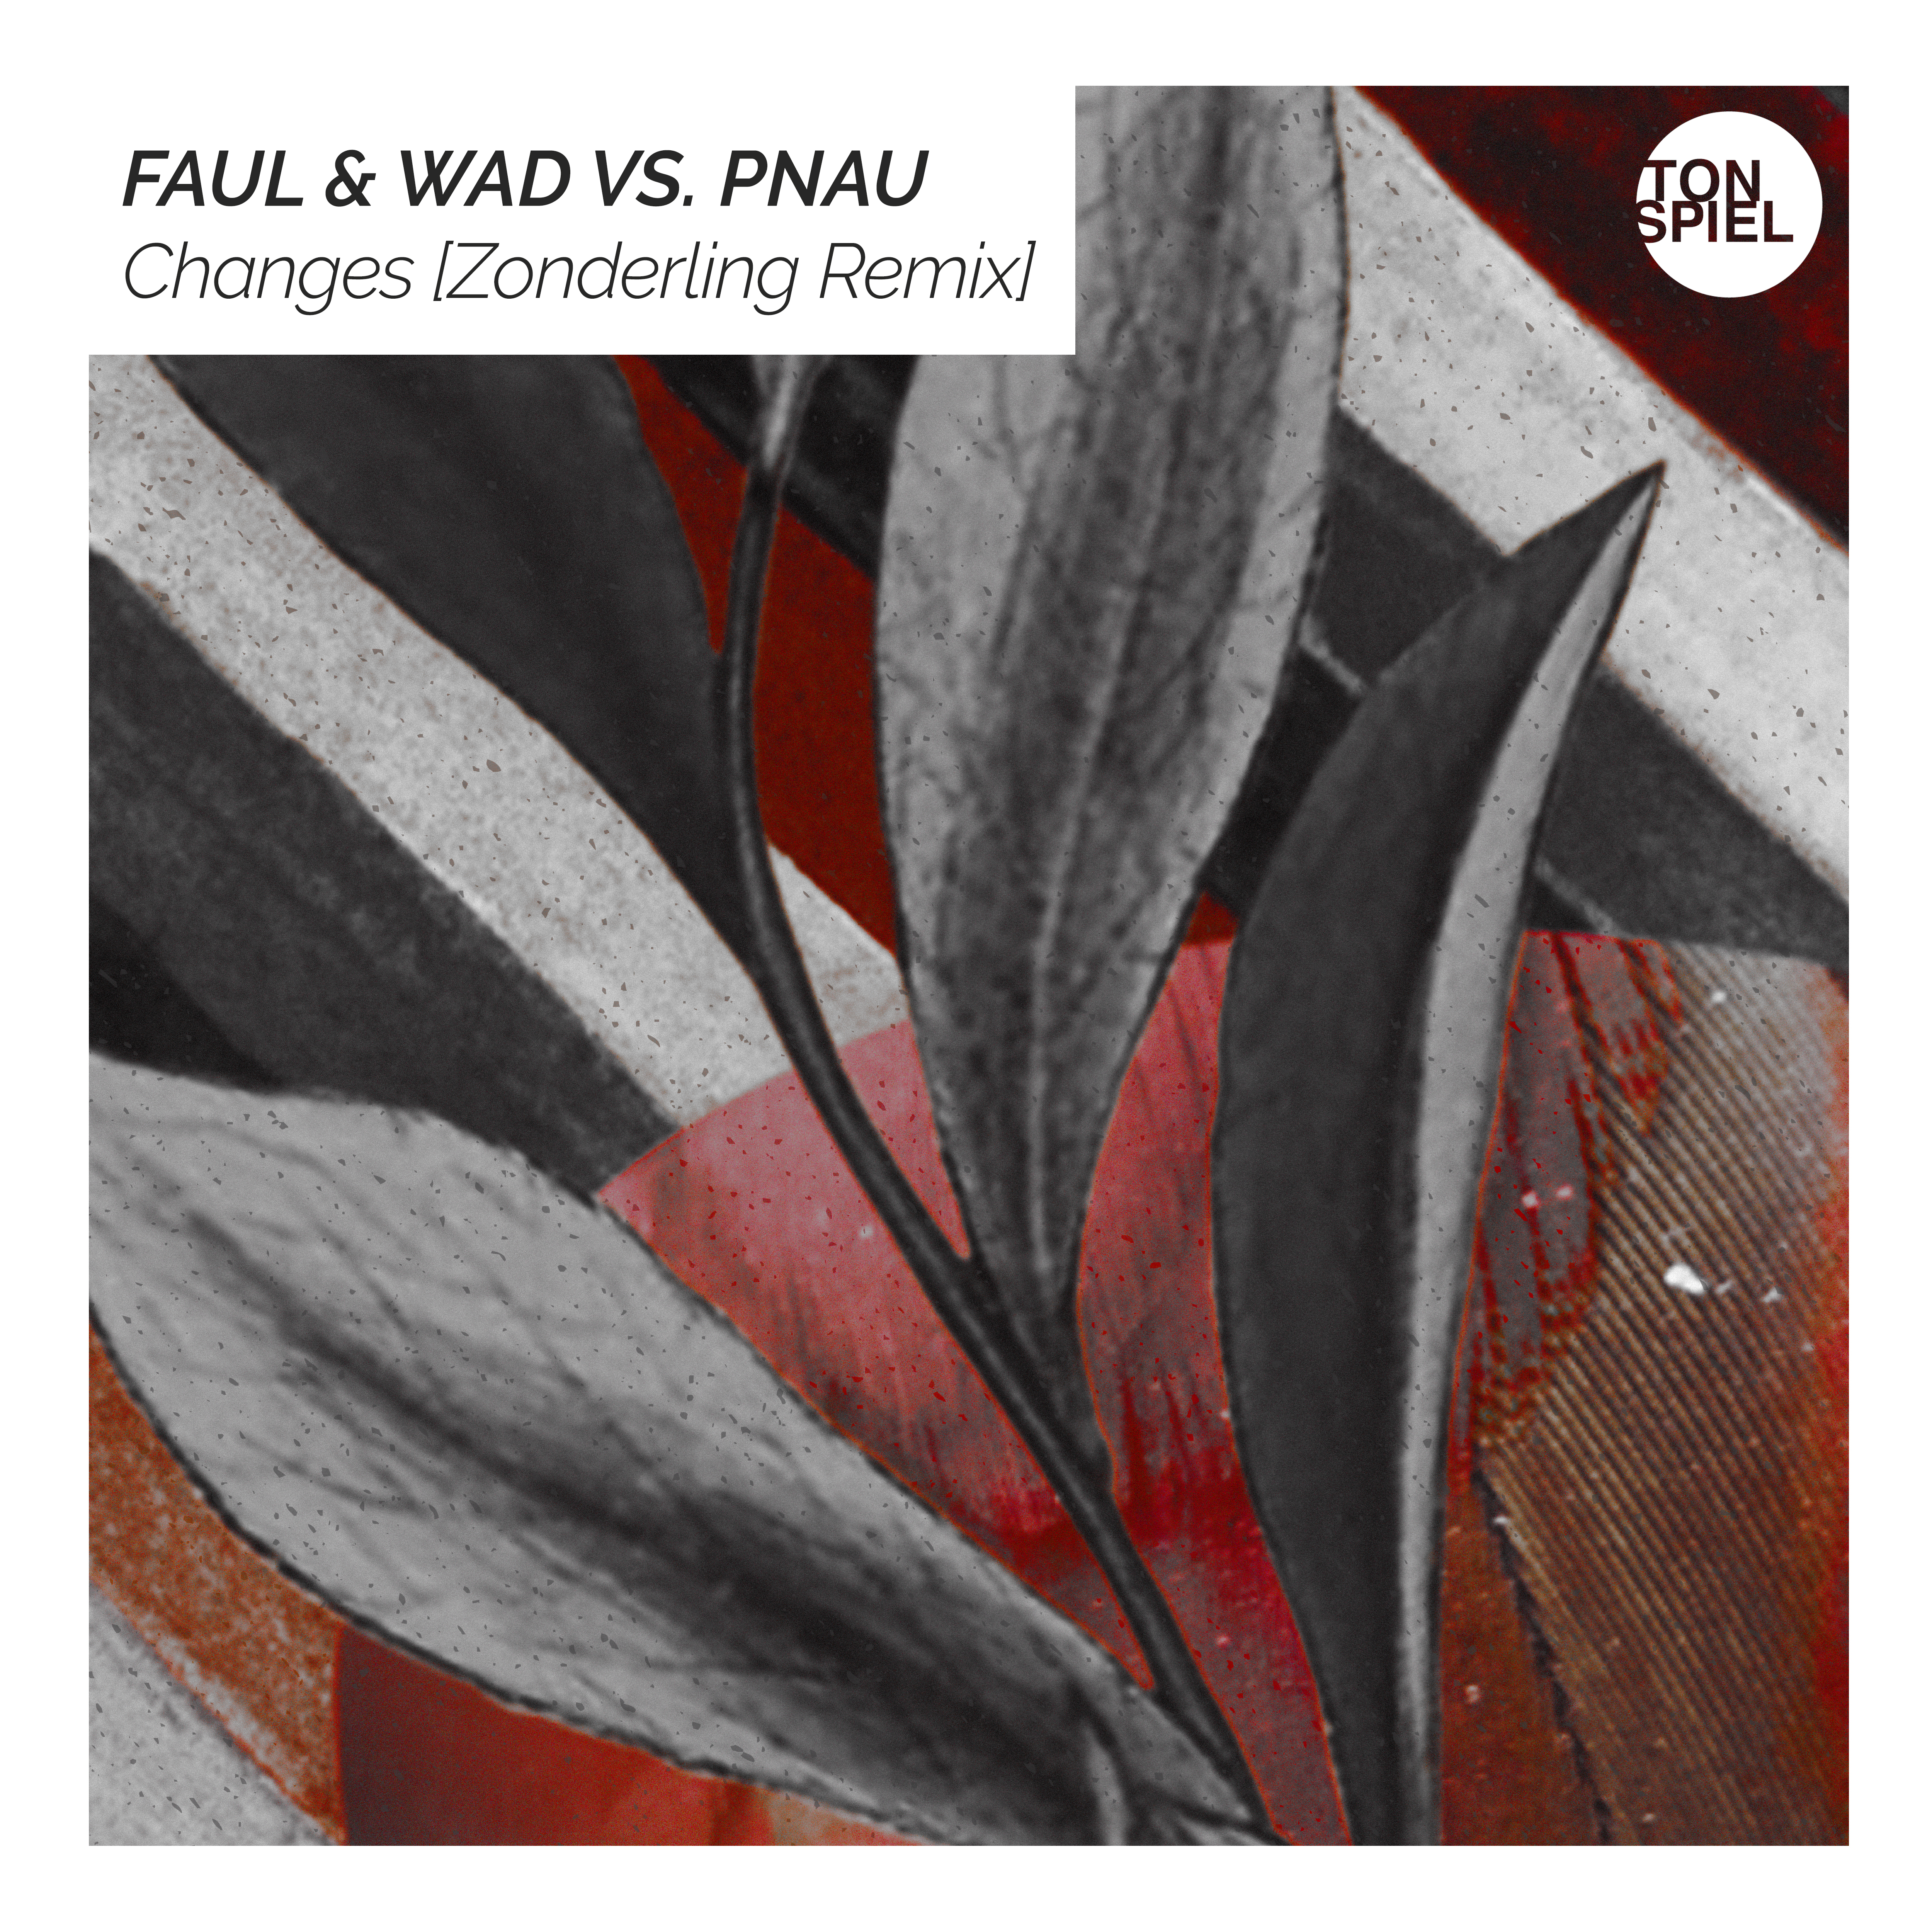 Faul & Wad Ad vs. Pnau - Changes (Zonderling Remix)